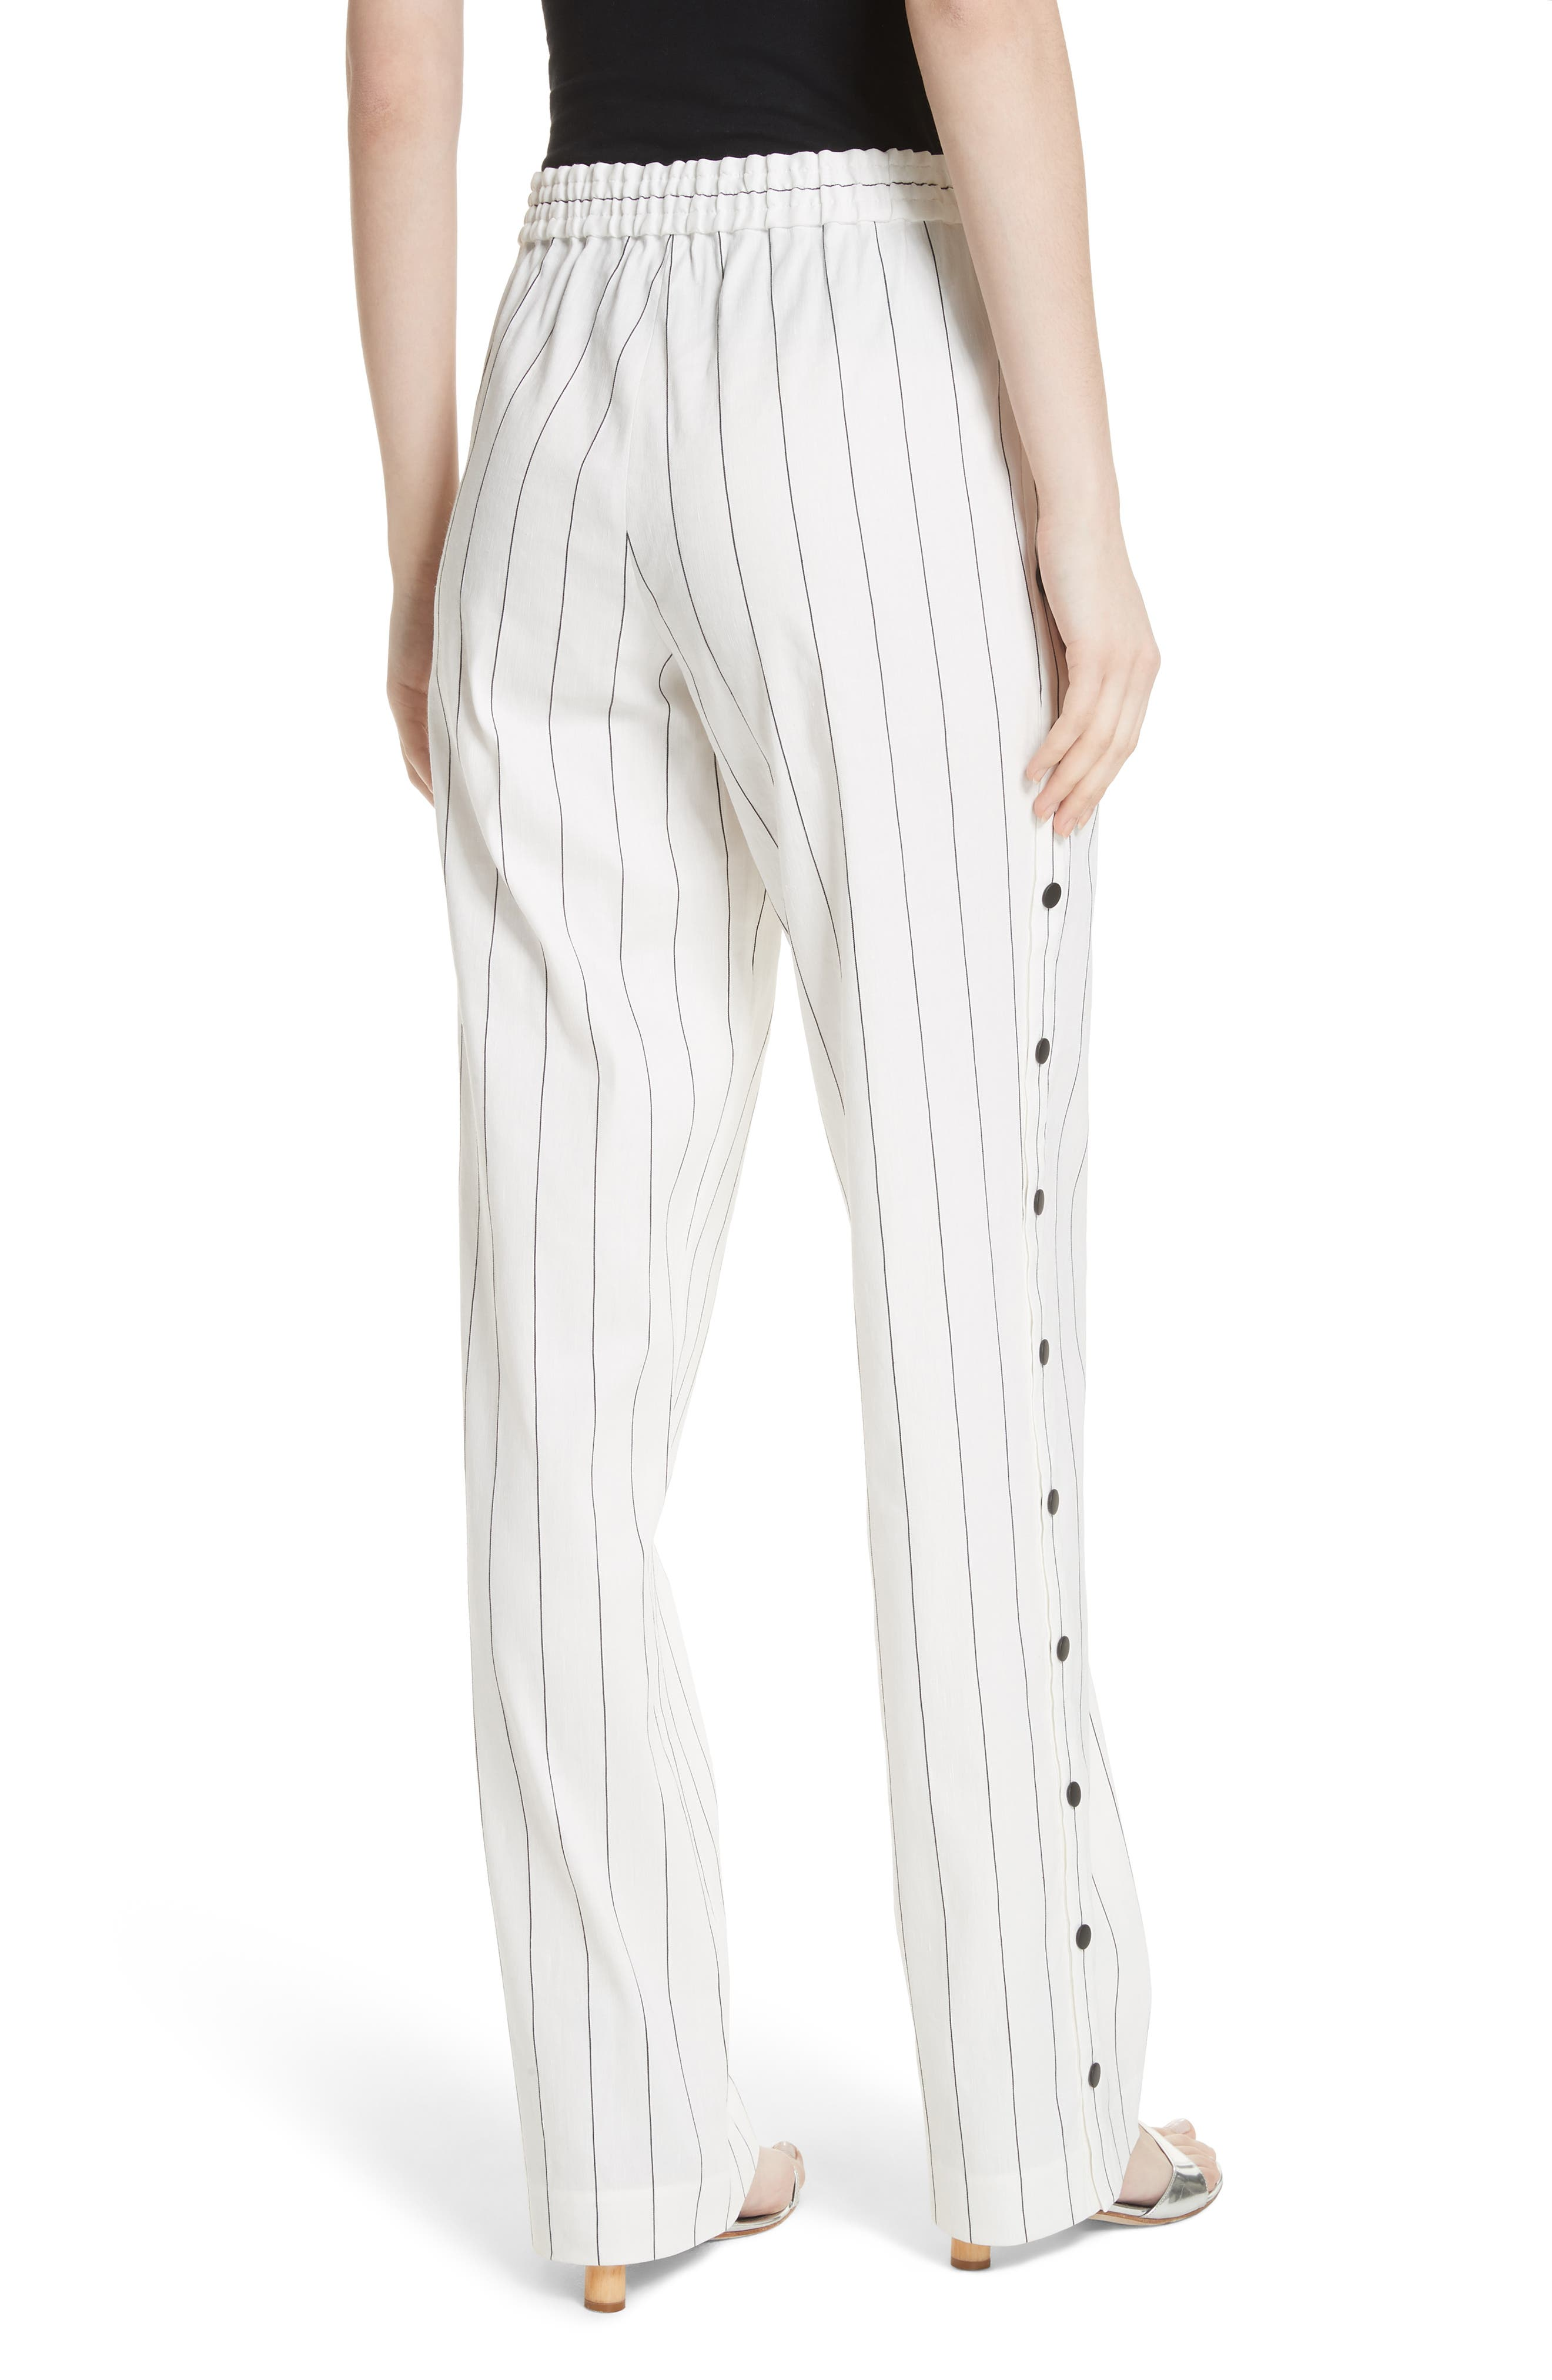 Snap Side Stripe Pants,                             Alternate thumbnail 2, color,                             Ivory Multi